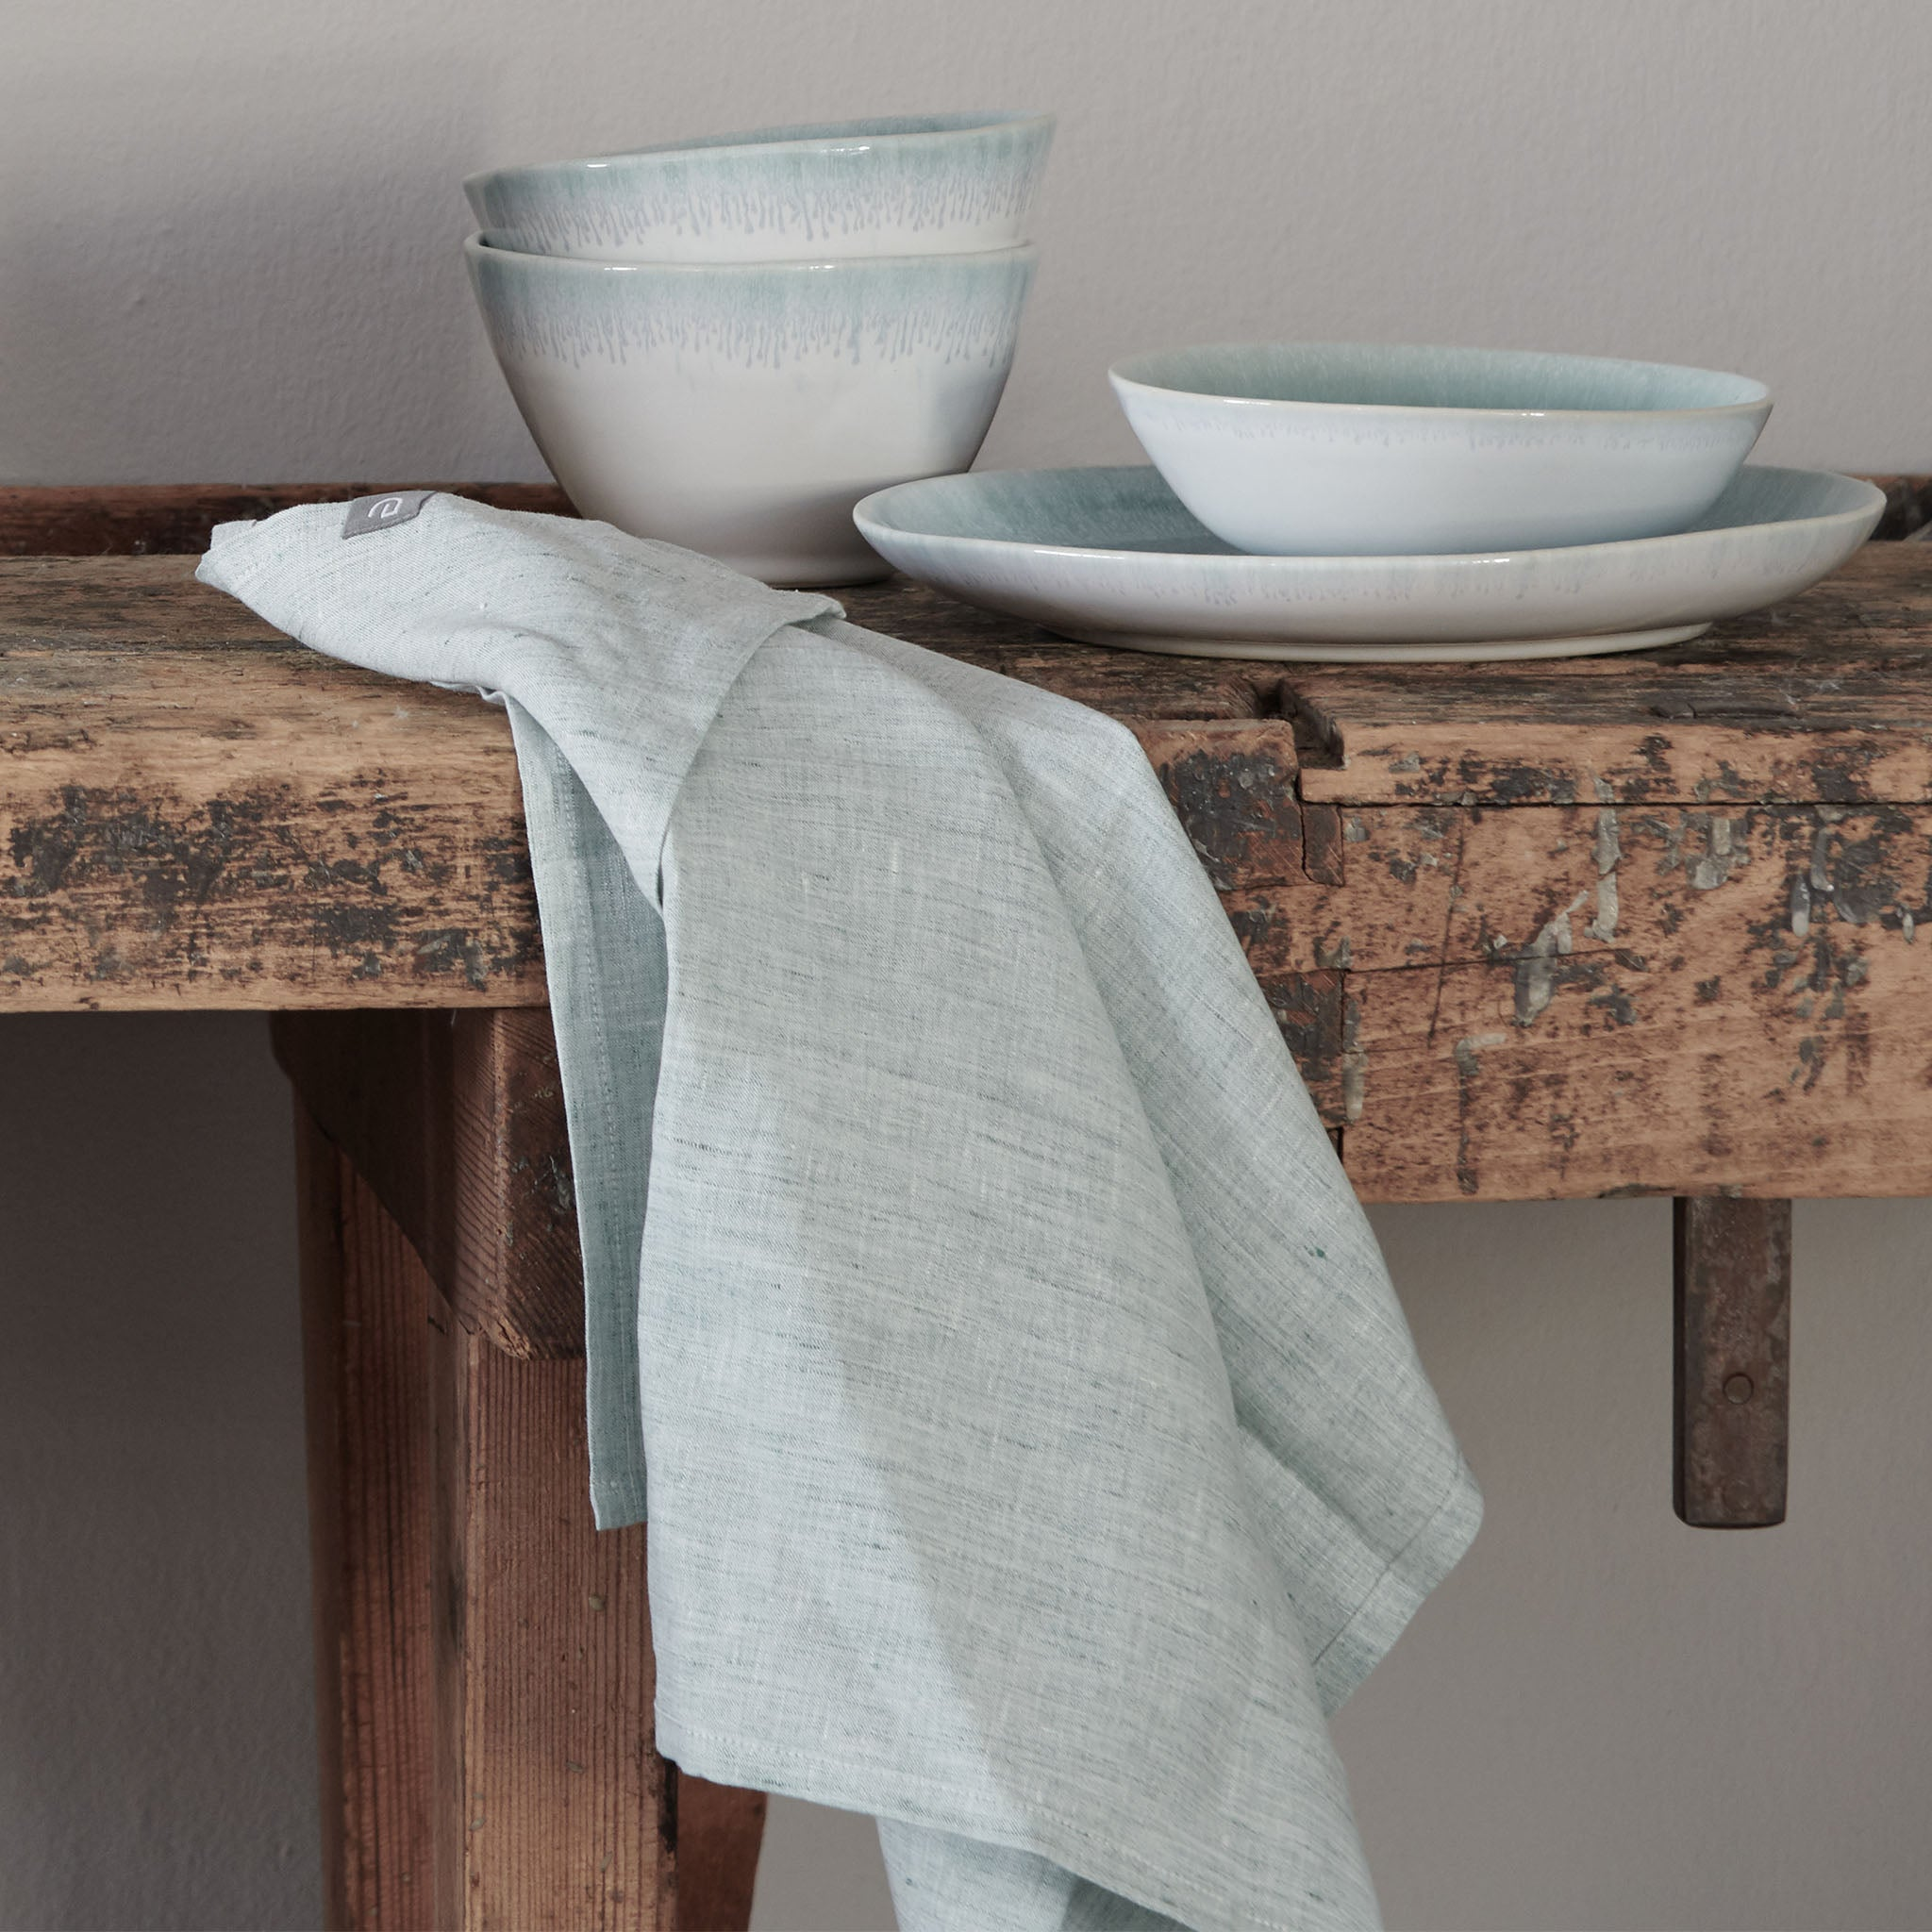 Sameiro Tea Towel in green grey | Home & Living inspiration | URBANARA